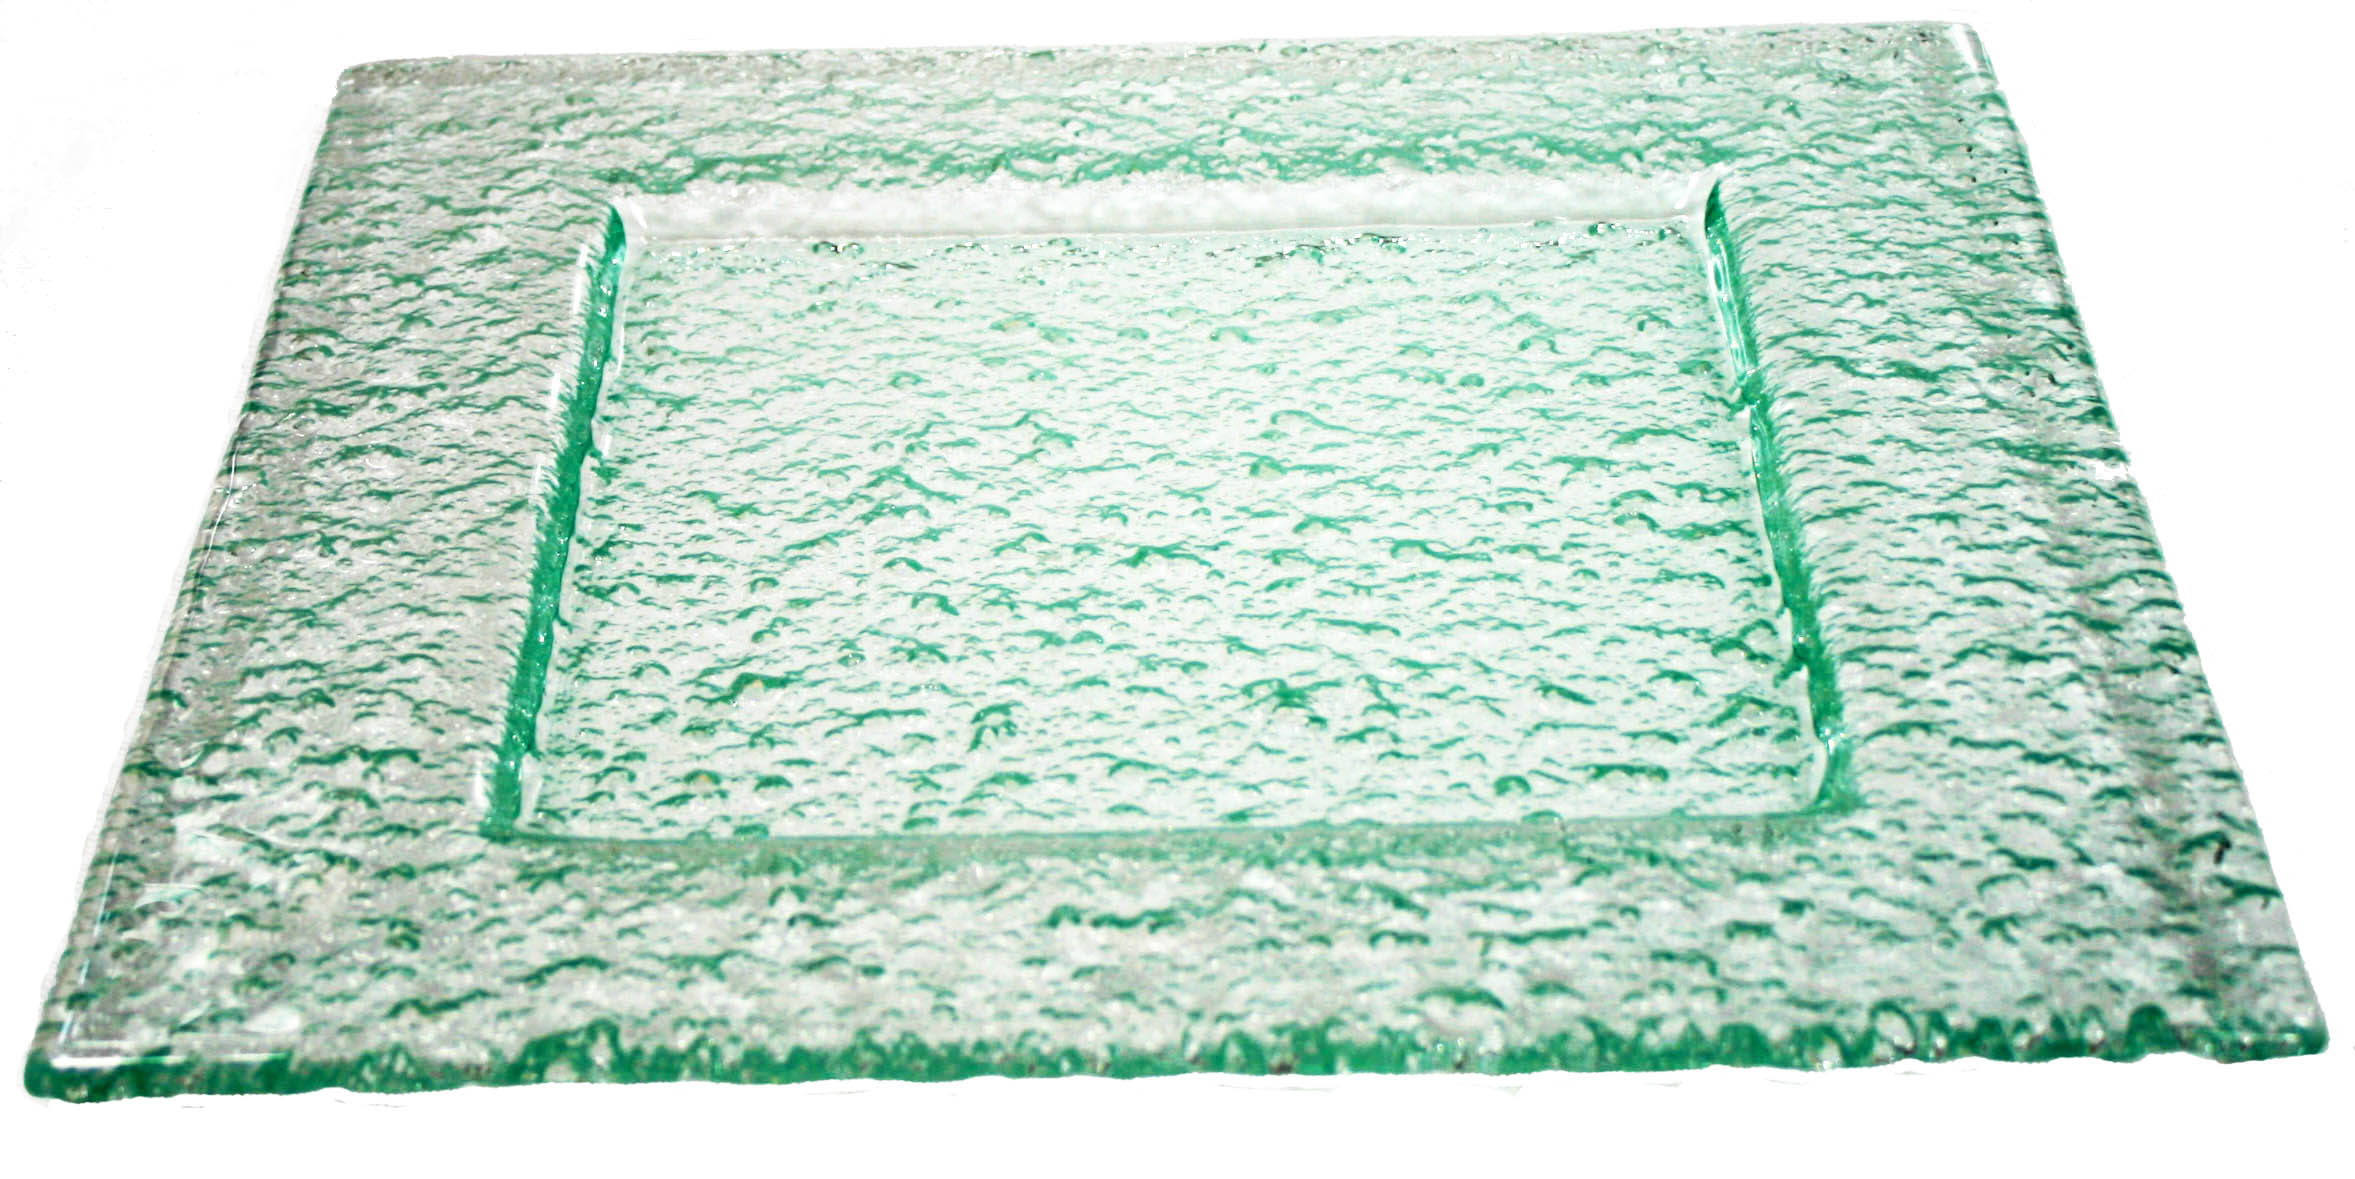 Green Tinted Glass Plate 6 Square Embossed  sc 1 st  Glass Designs & Square Glass Plates - Glass Designs